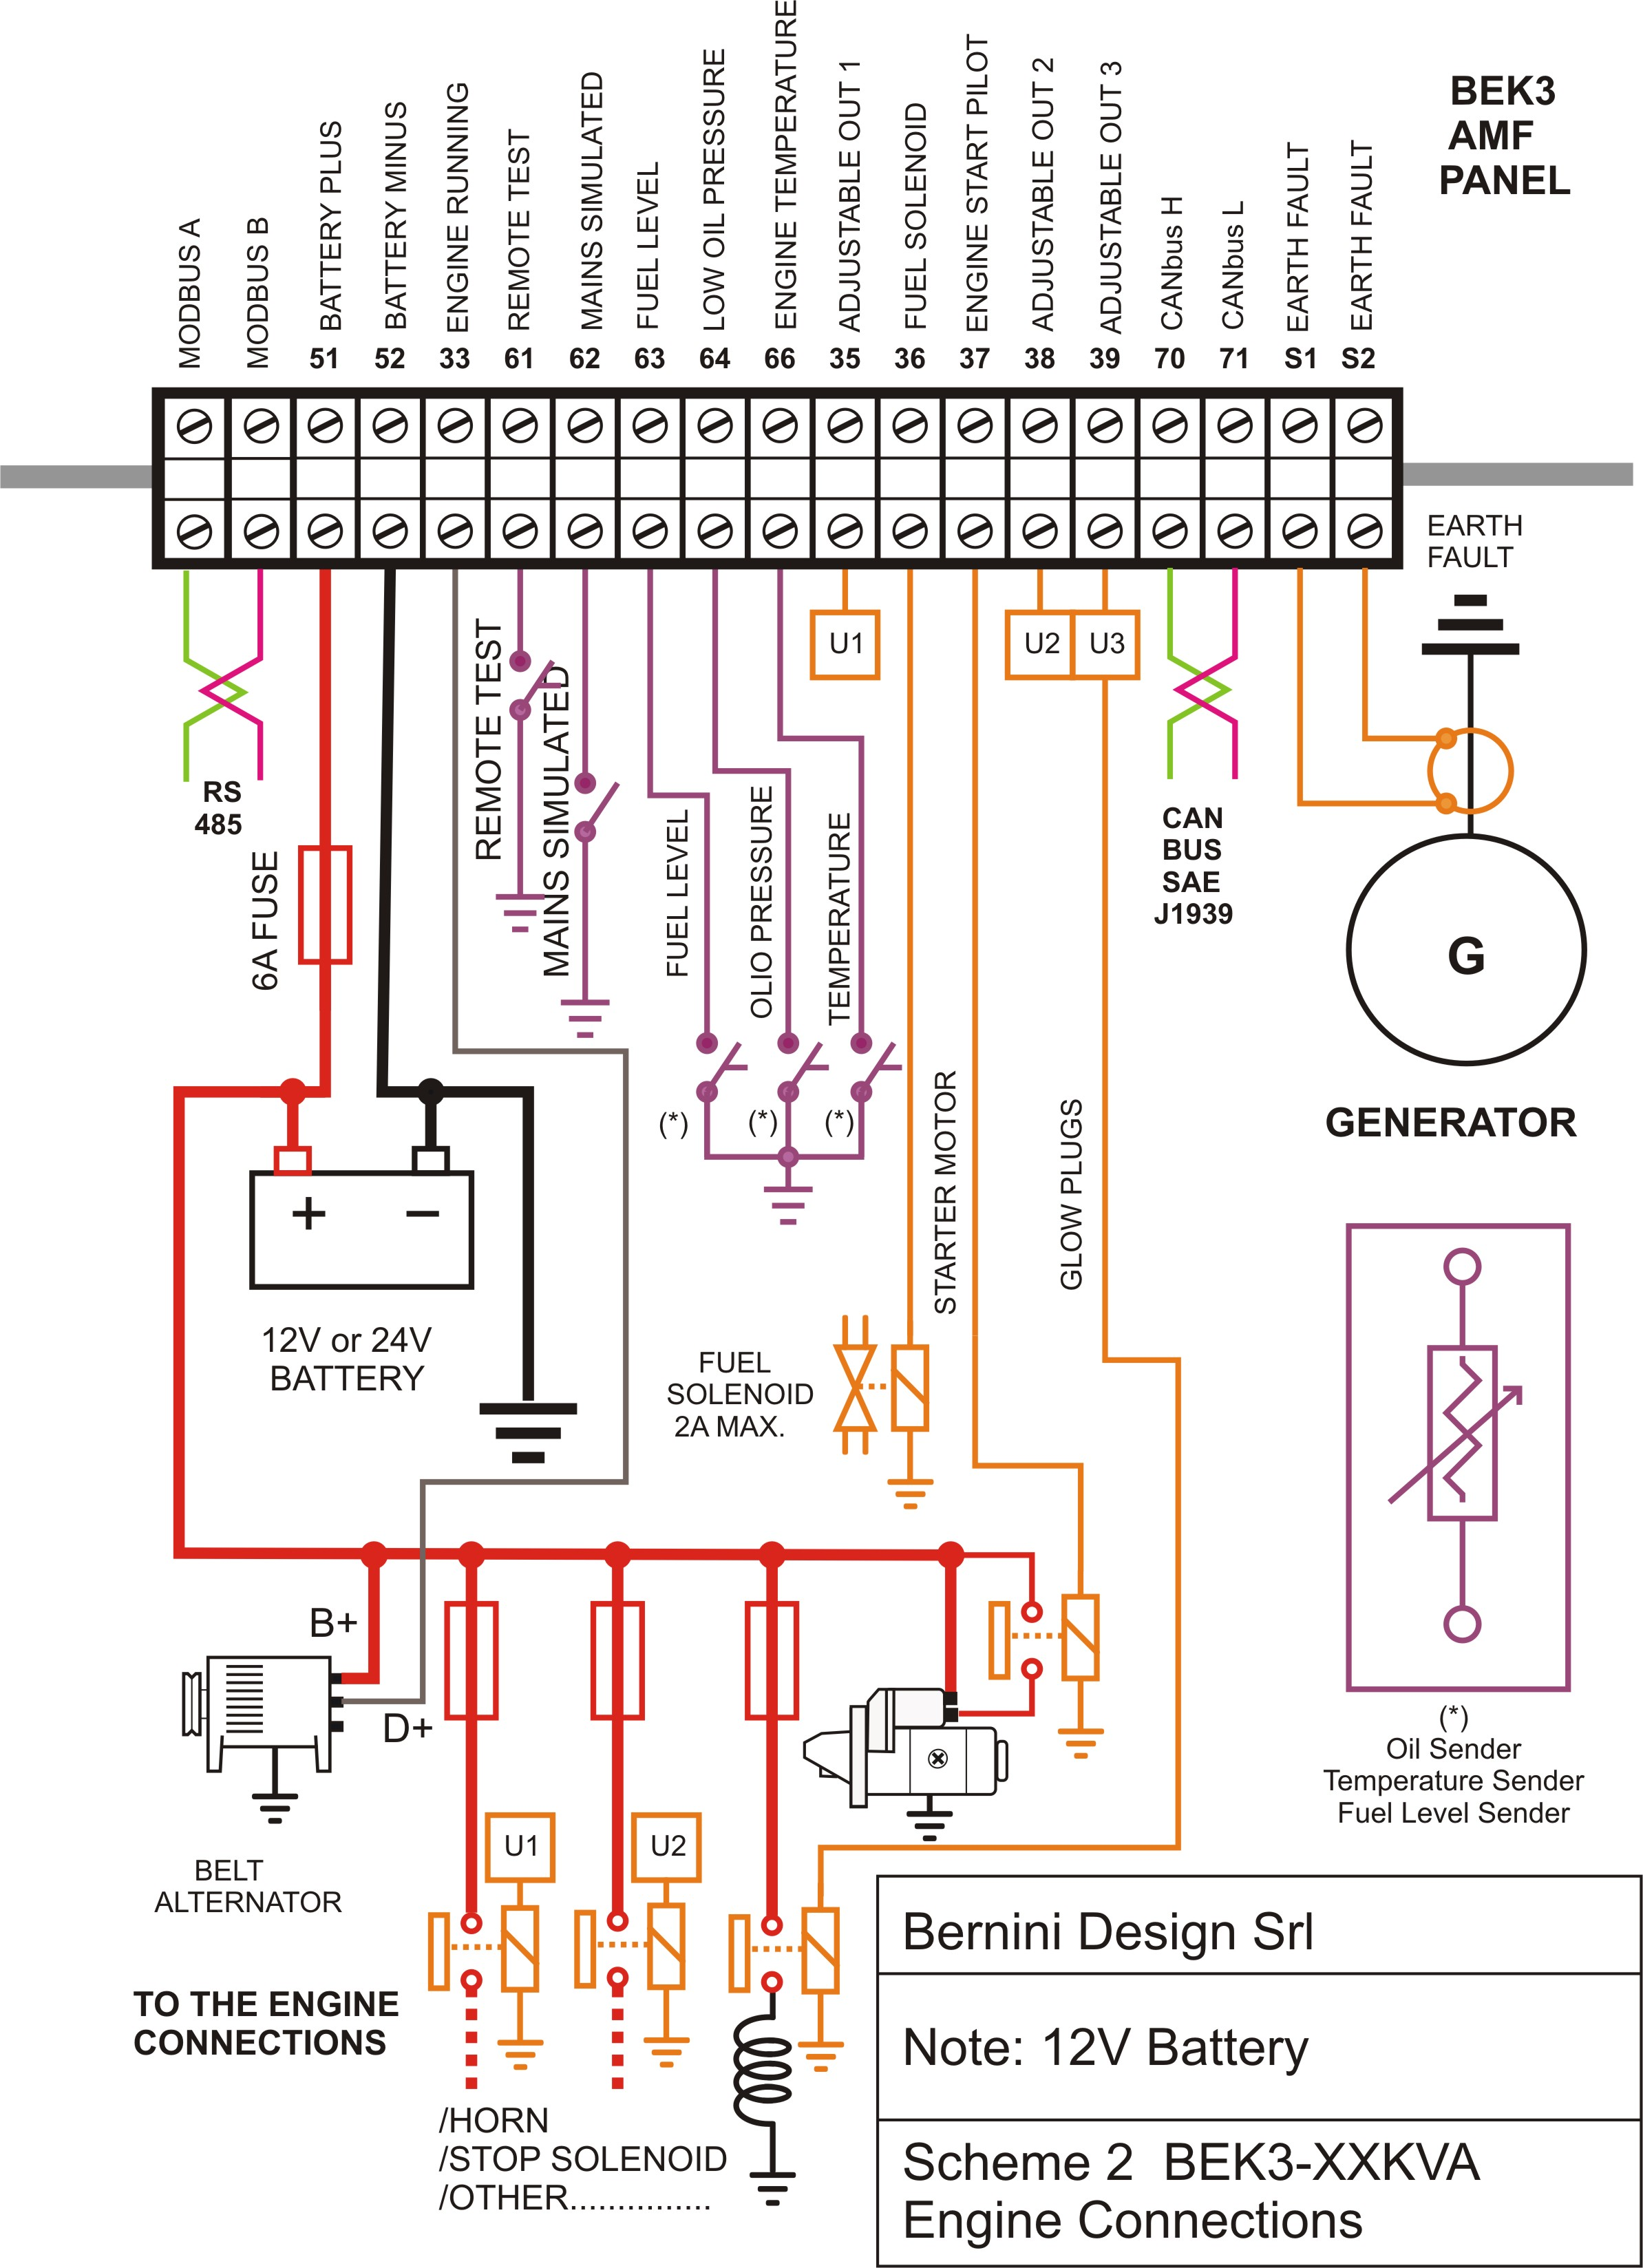 Diesel Generator Control Panel Wiring Diagram Engine Connections wiring diagram tool wiring color coding \u2022 free wiring diagrams duplex pump control panel wiring diagram at readyjetset.co